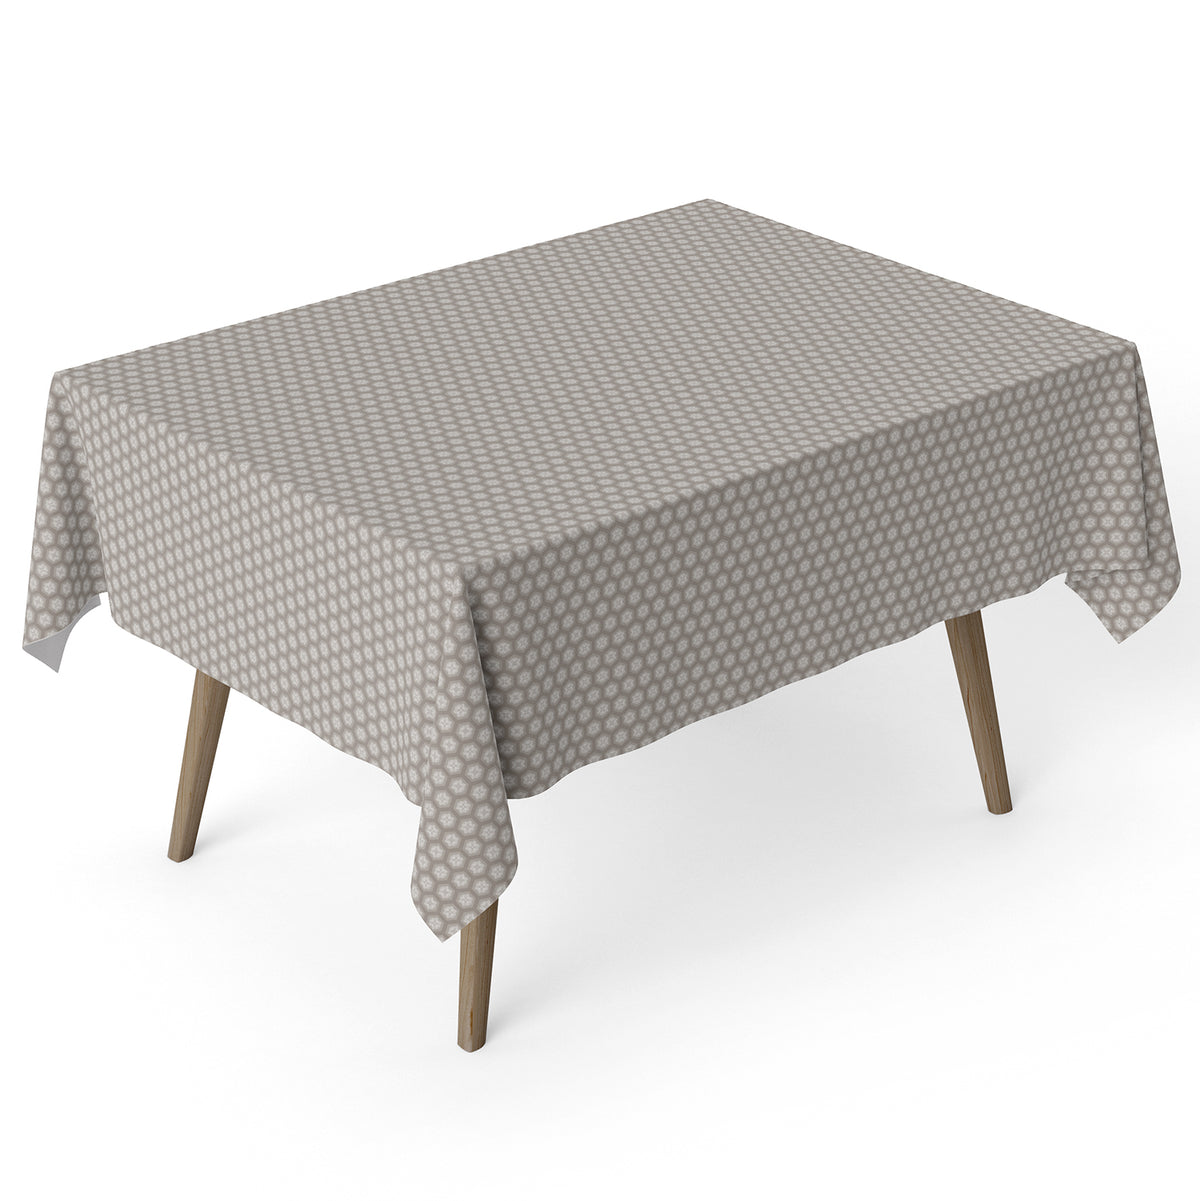 * COMING SPRING 2021 * HEXA WIPEABLE TABLECLOTH